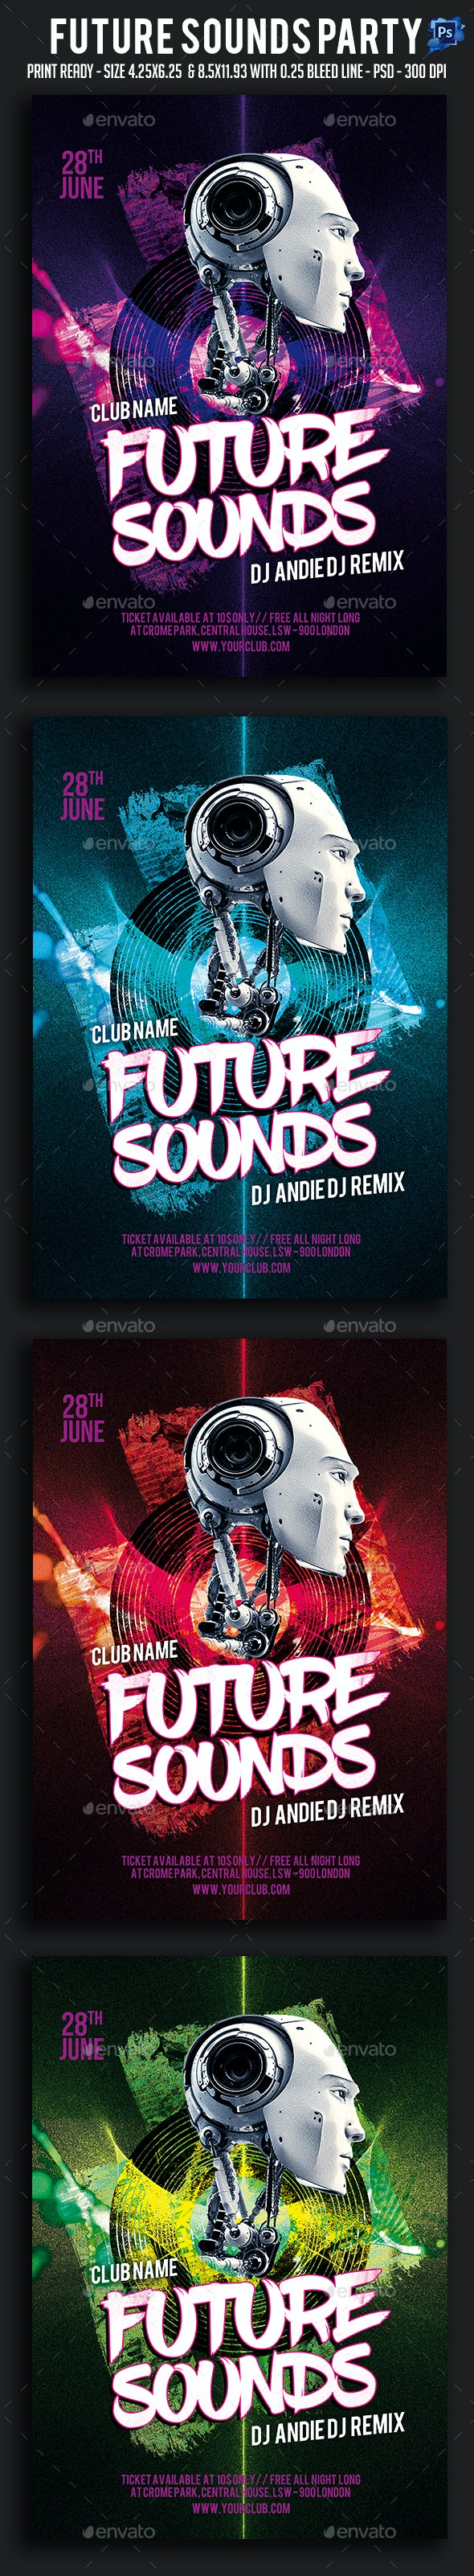 Future Sounds Party Flyer - Clubs & Parties Events